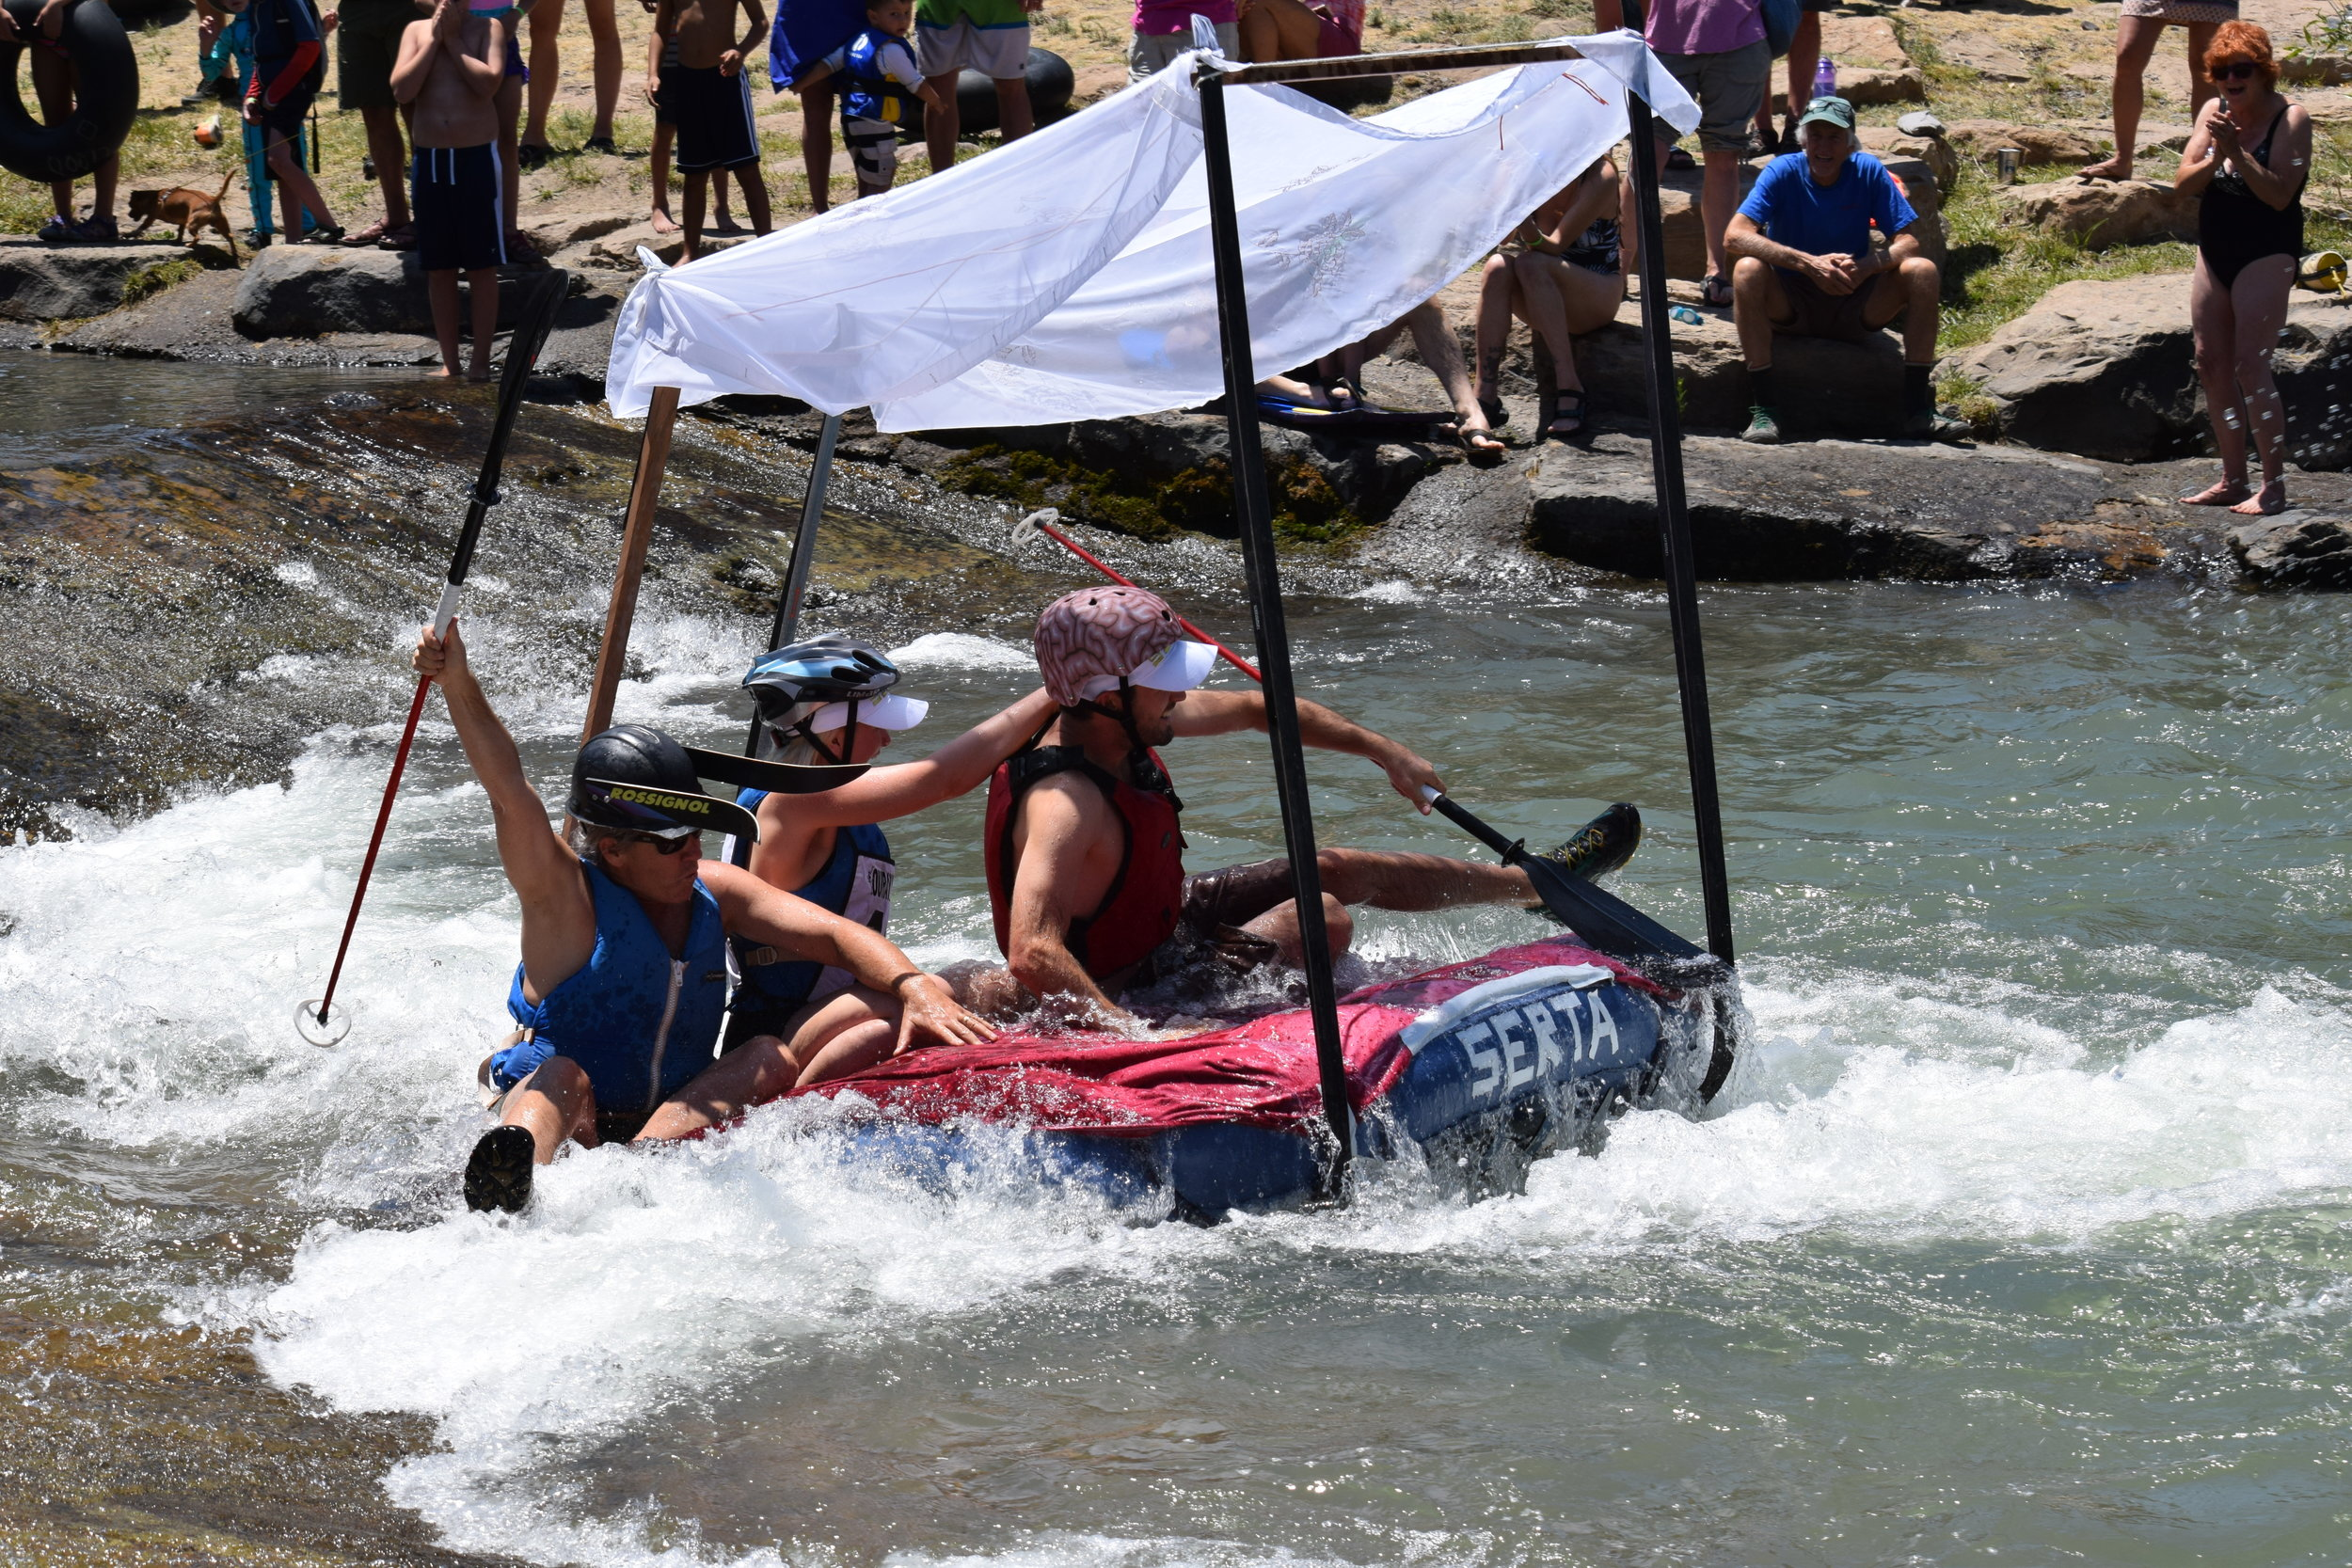 Photo courtesy of Uncompahgre Watershed Partnership. The Junk of the Unc is one of the entertaining river races at the Ridgway RiverFest.